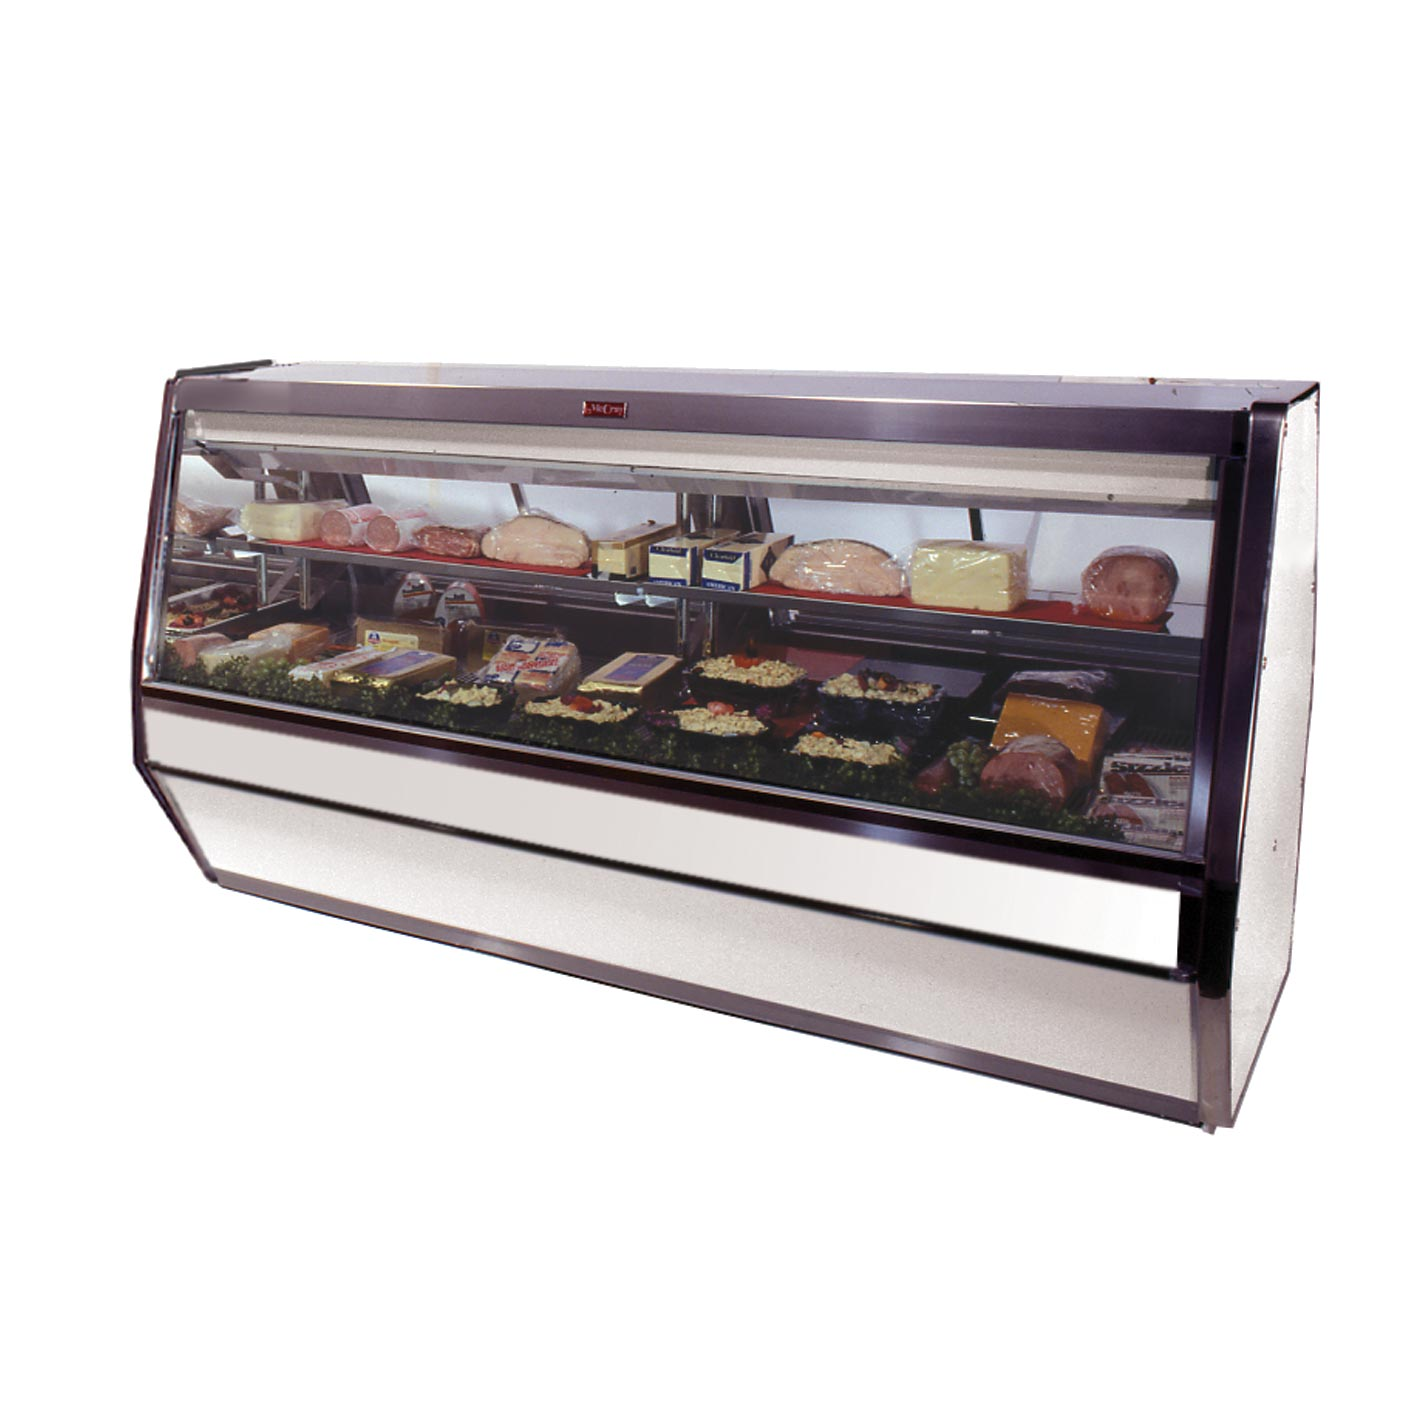 Howard-McCray SC-CDS40E-4-S-LED display case, refrigerated deli